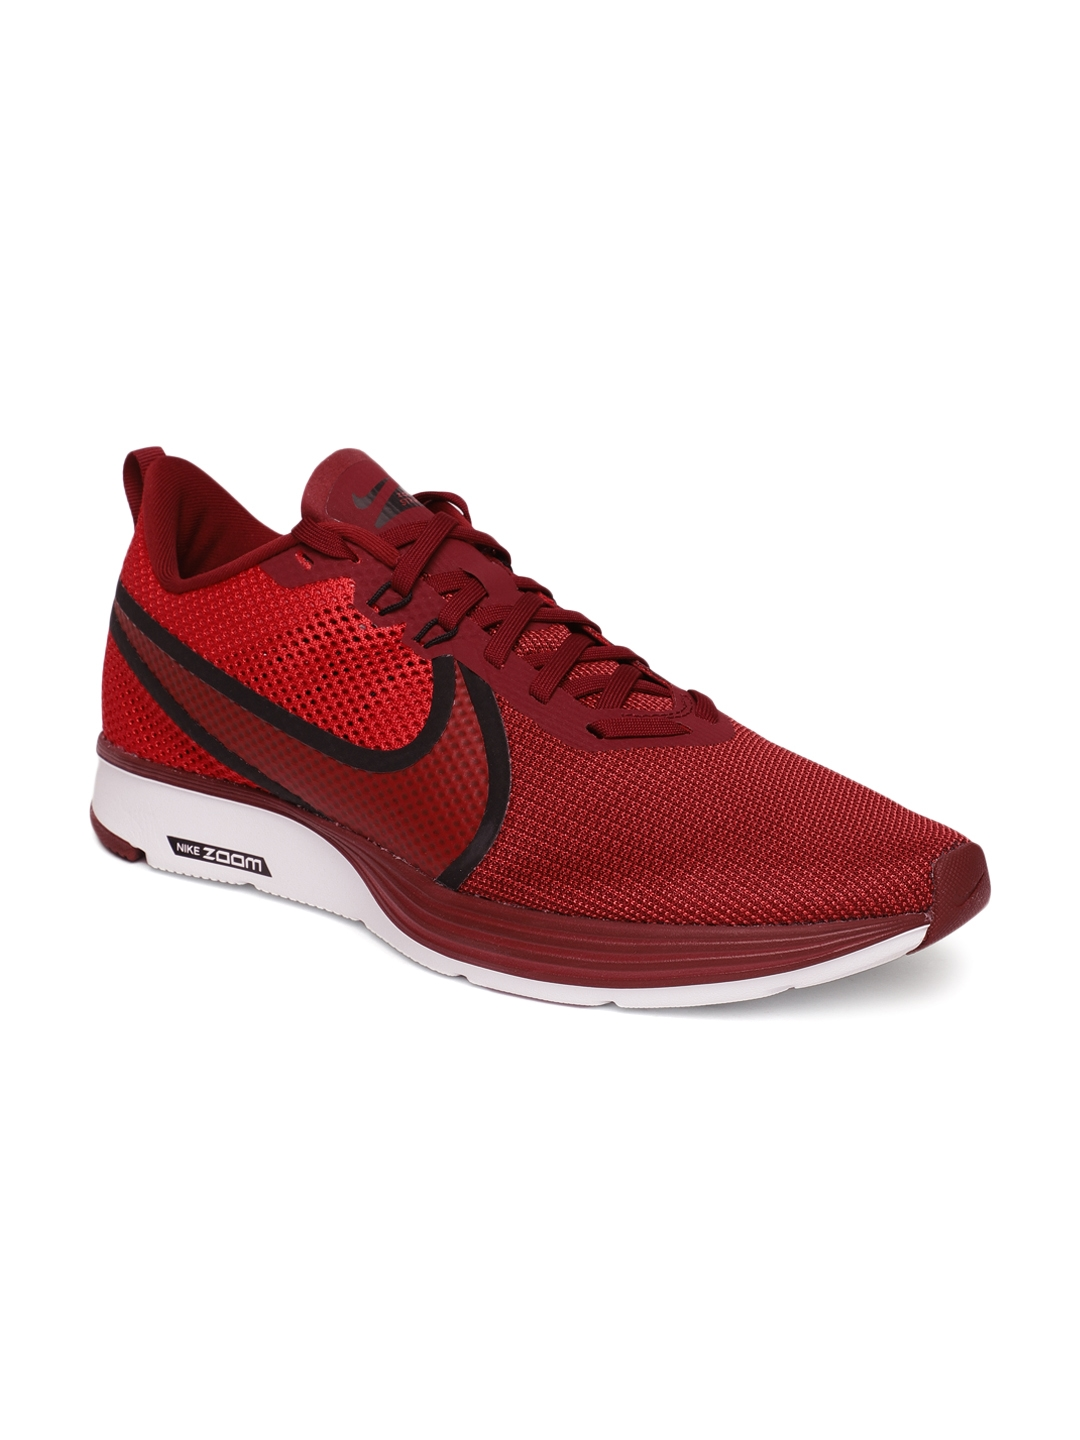 30163f2af007a Buy Nike Men Red Solid ZOOM STRIKE 2 Running Shoes - Sports Shoes ...